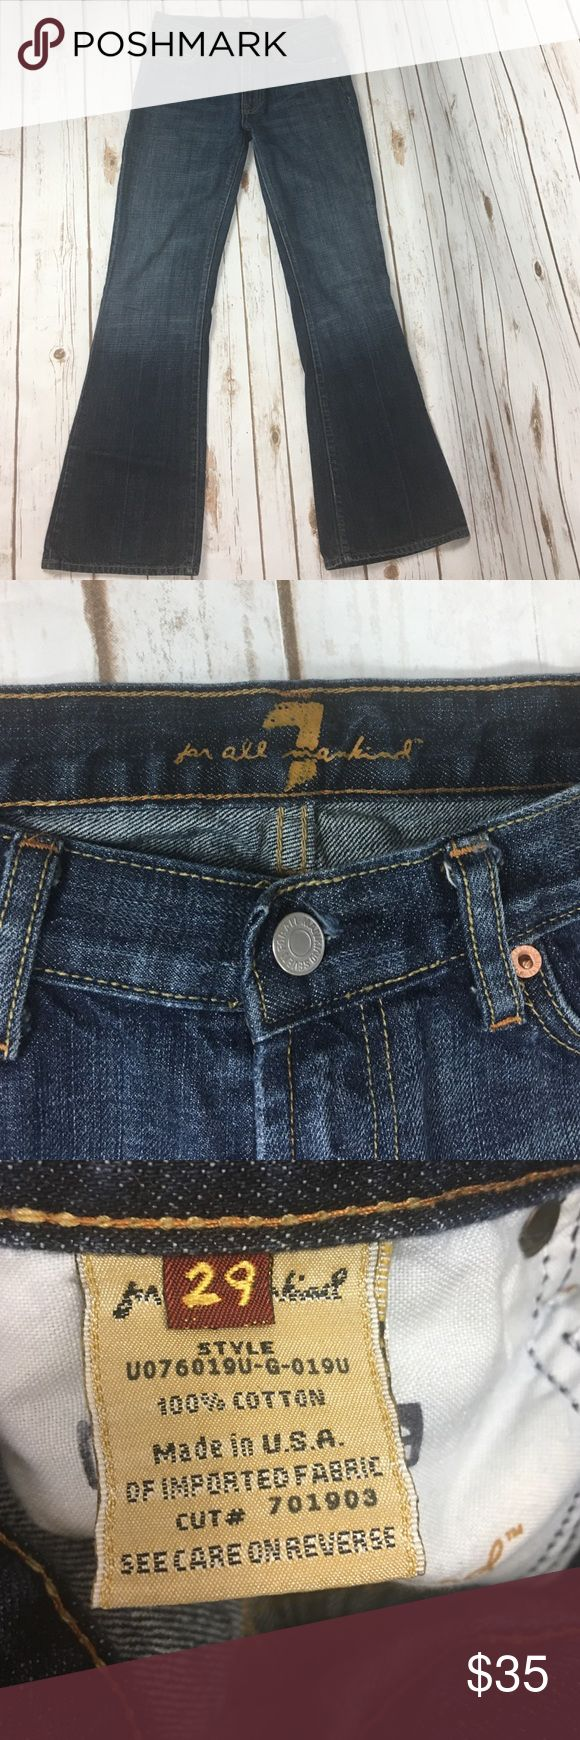 Seven jeans.  Flare. Sz 29.  Excellent condition. Seven jeans.  Flare. Sz 29.  Excellent condition. Inseam 30.75 in.  Rise is 8.5 inches. Seven7 Jeans Flare & Wide Leg